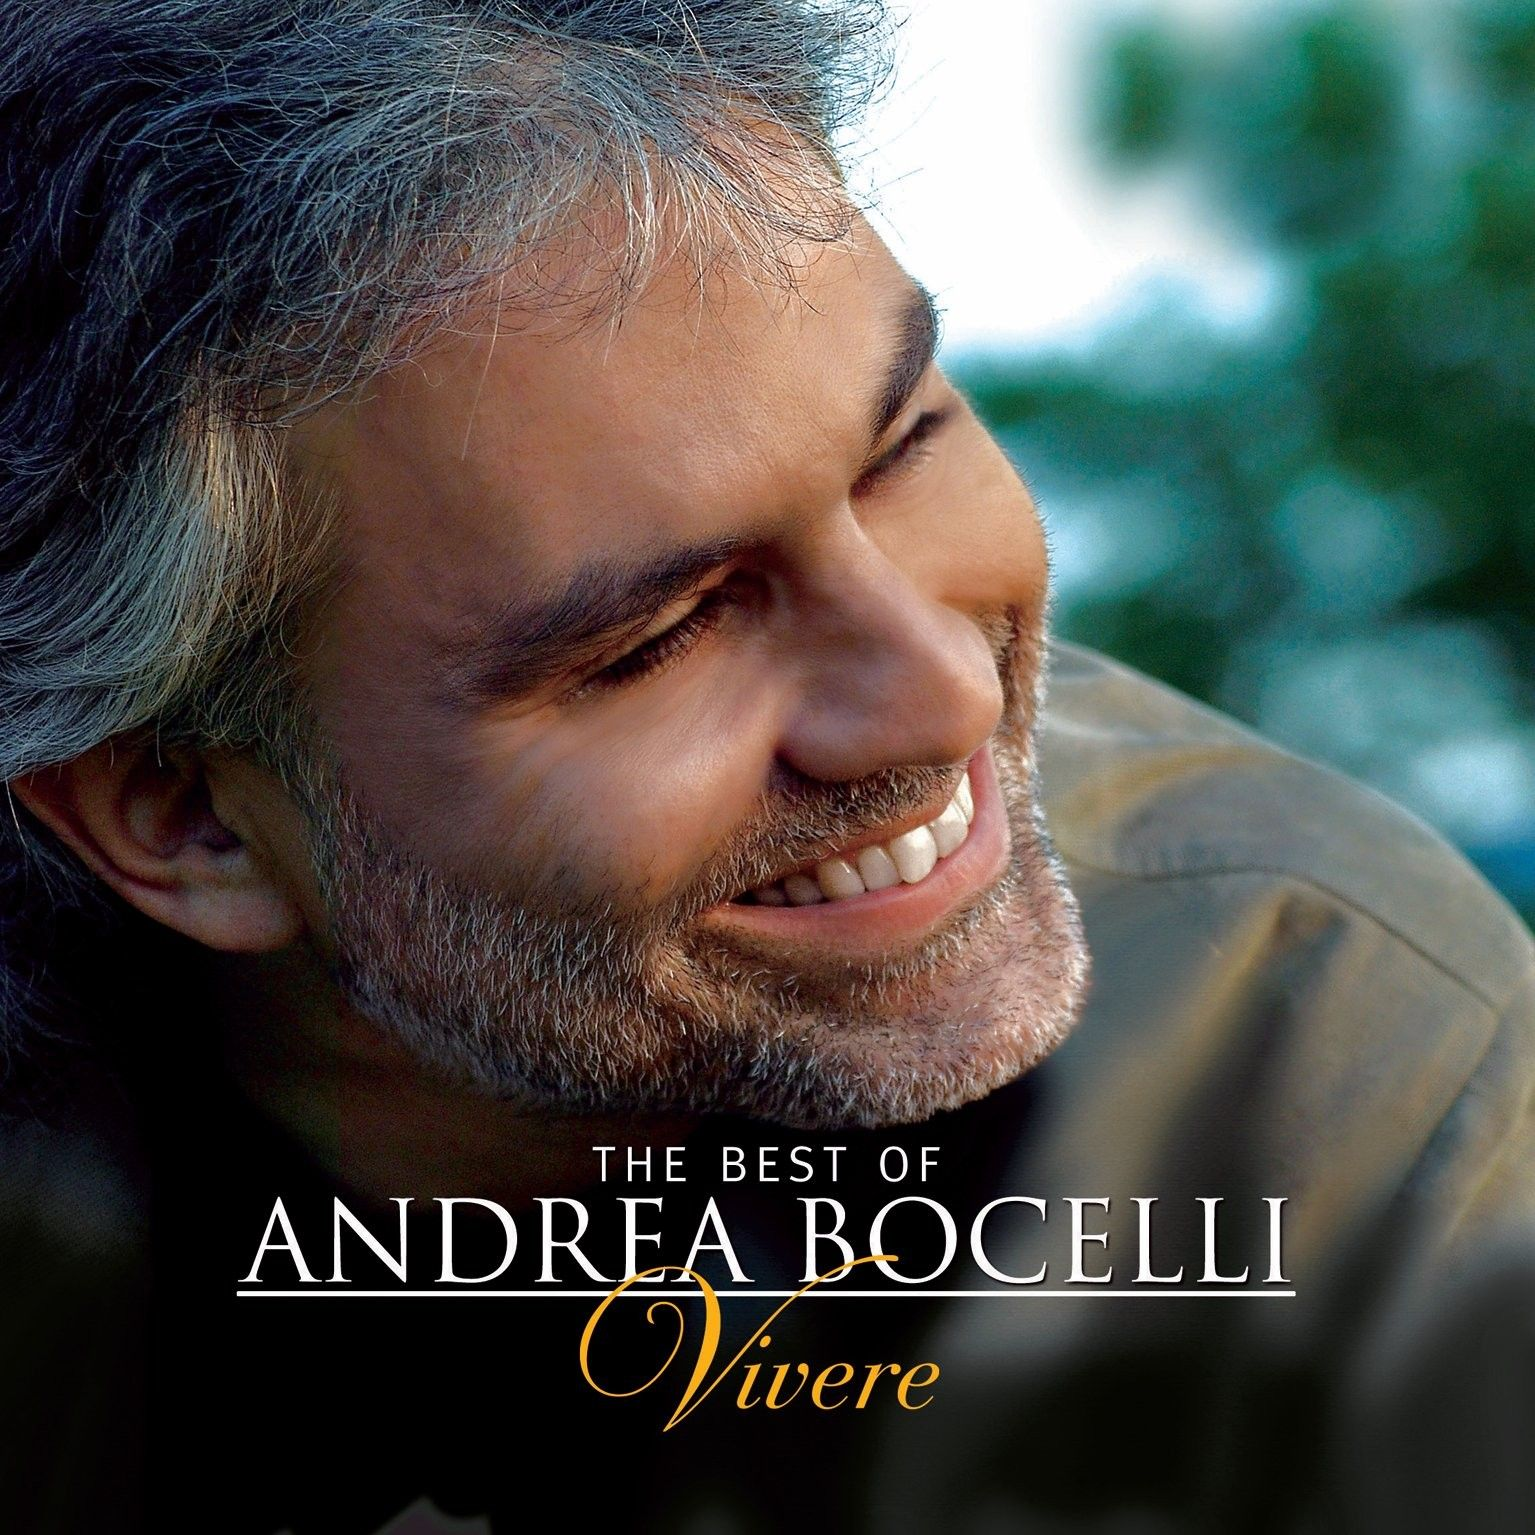 Andrea Bocelli - The Best Of Andrea Bocelli: Vivere album cover